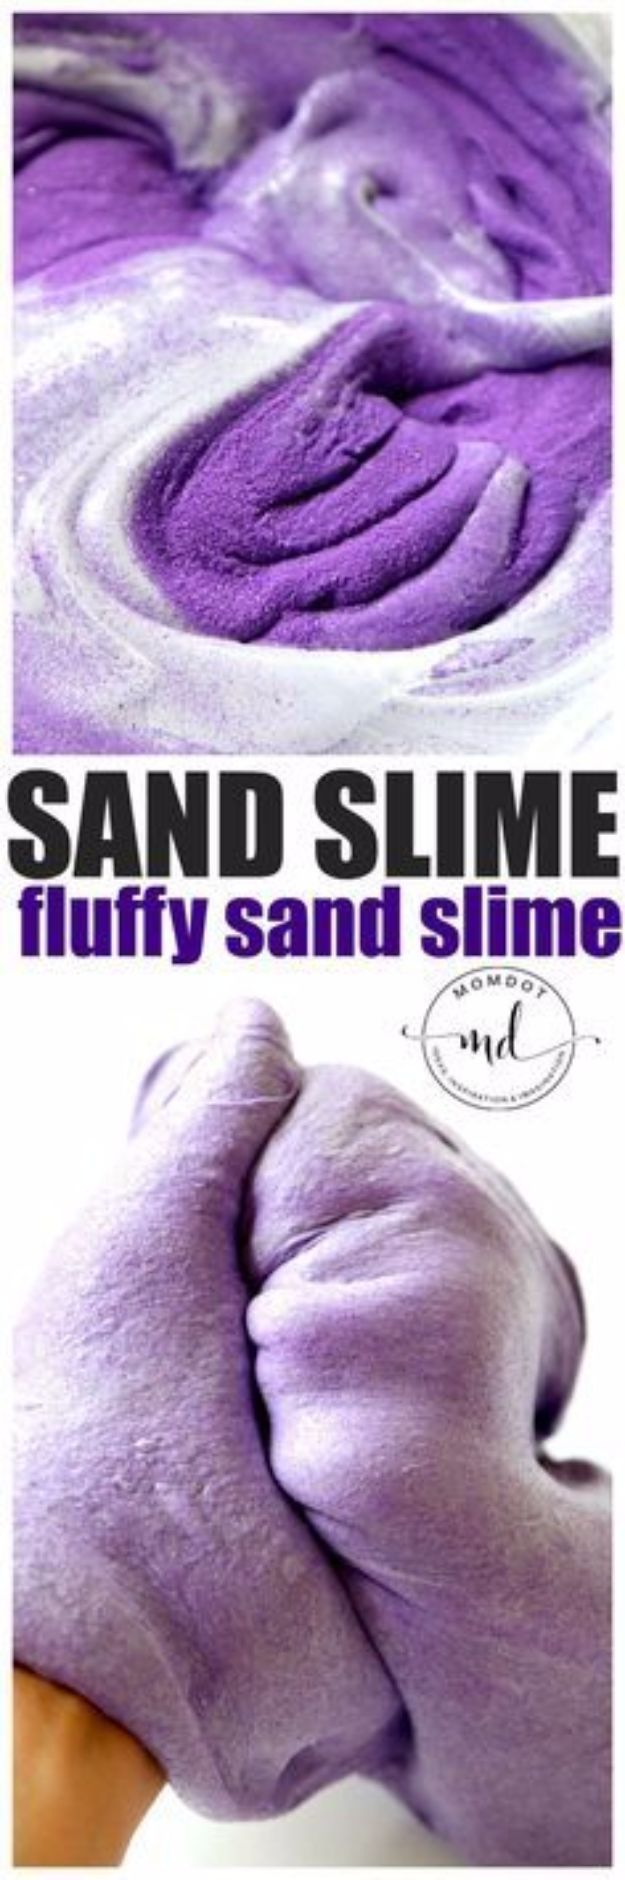 Best DIY Slime Recipes -Fluffy Sand Slime - Cool and Easy Slime Recipe and Tutorials - Ideas Without Glue, Without Borax, For Kids, With Liquid Starch, Cornstarch and Laundry Detergent - How to Make Slime at Home - Fun Crafts and DIY Projects for Teens, Kids, Teenagers and Teens - Galaxy and Glitter Slime, Edible Slime, Rainbow Colored Slime, Shaving Cream recipes and more fun crafts and slimes #slimerecipes #slime #diyslime #teencrafts